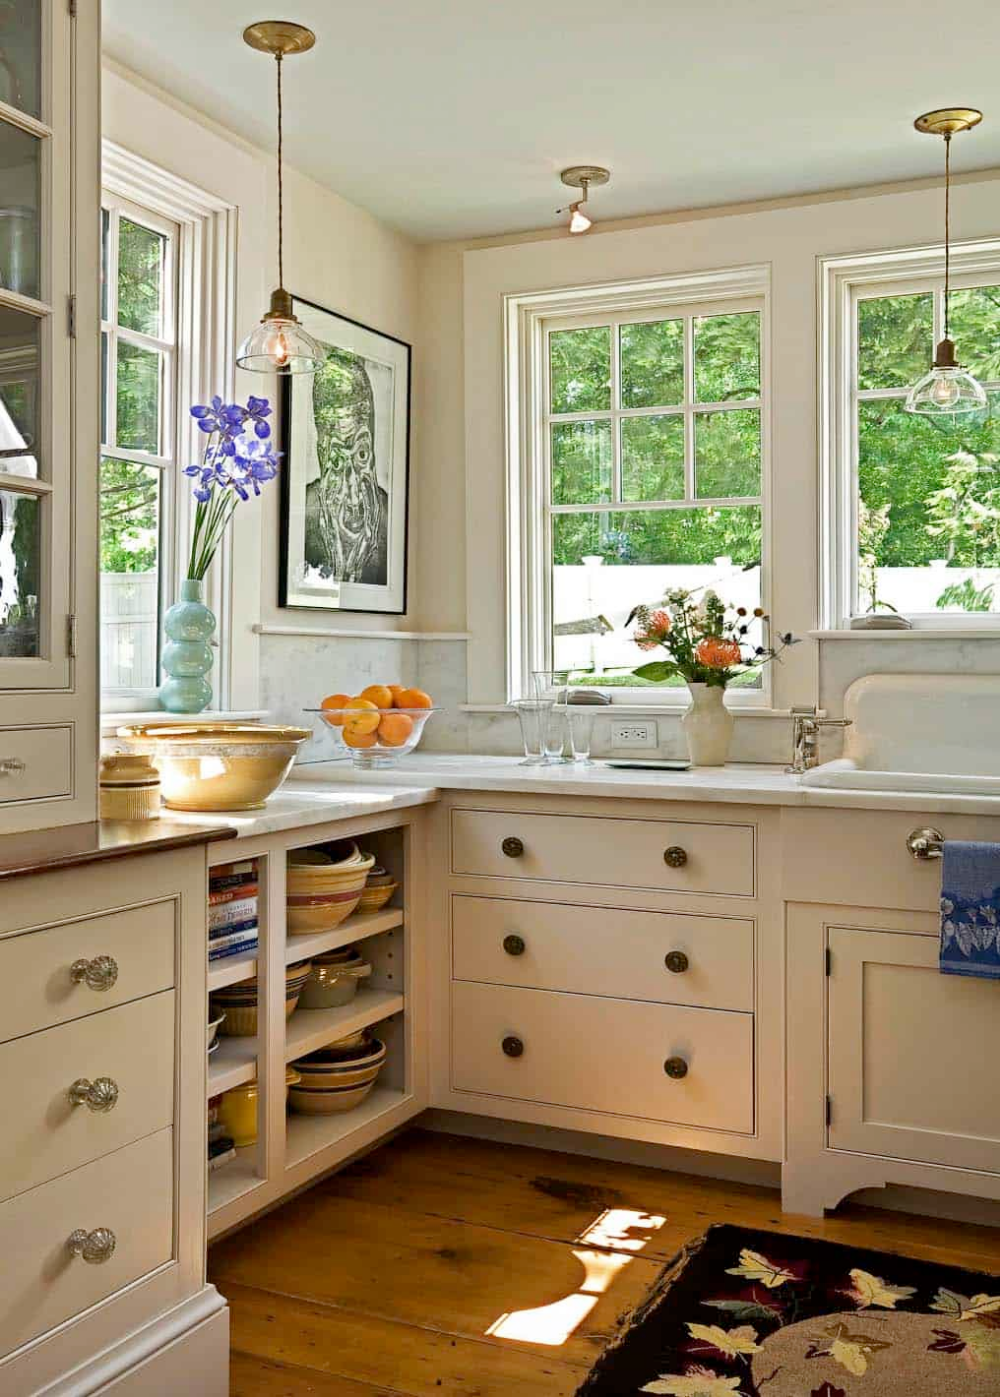 Antique cape style house gets charming makeover in New ...